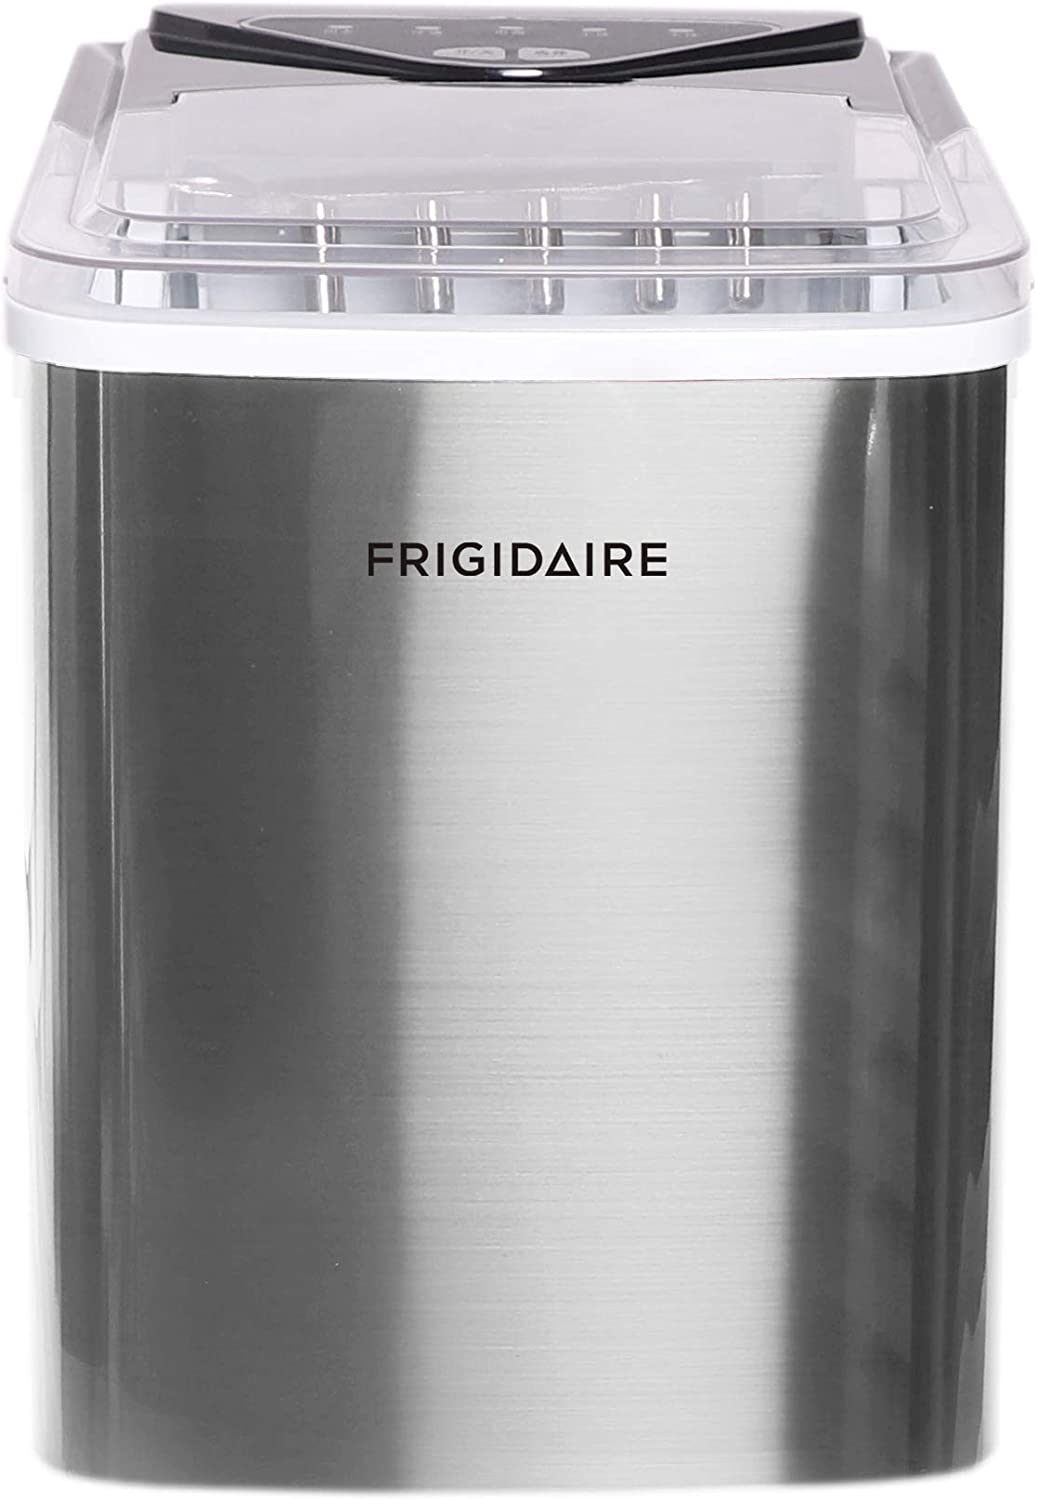 Frigidaire EFIC123-SS Ice Maker, Stainless (Renewed)